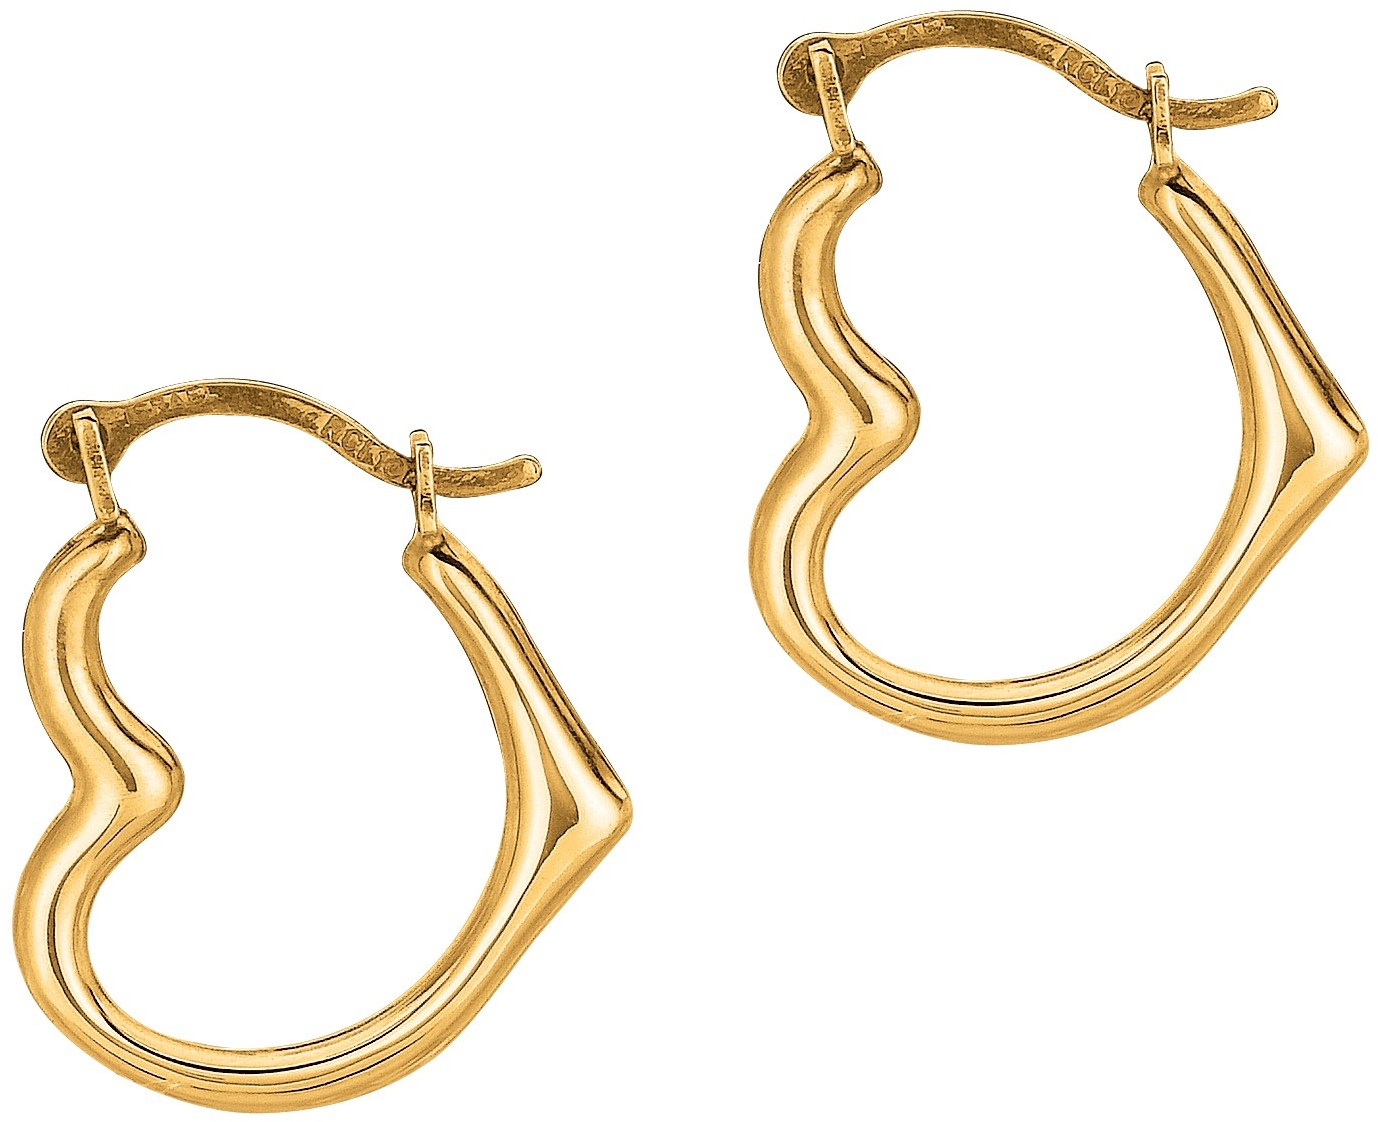 10K Yellow Gold Shiny Small Open Heart Hoop Earrings